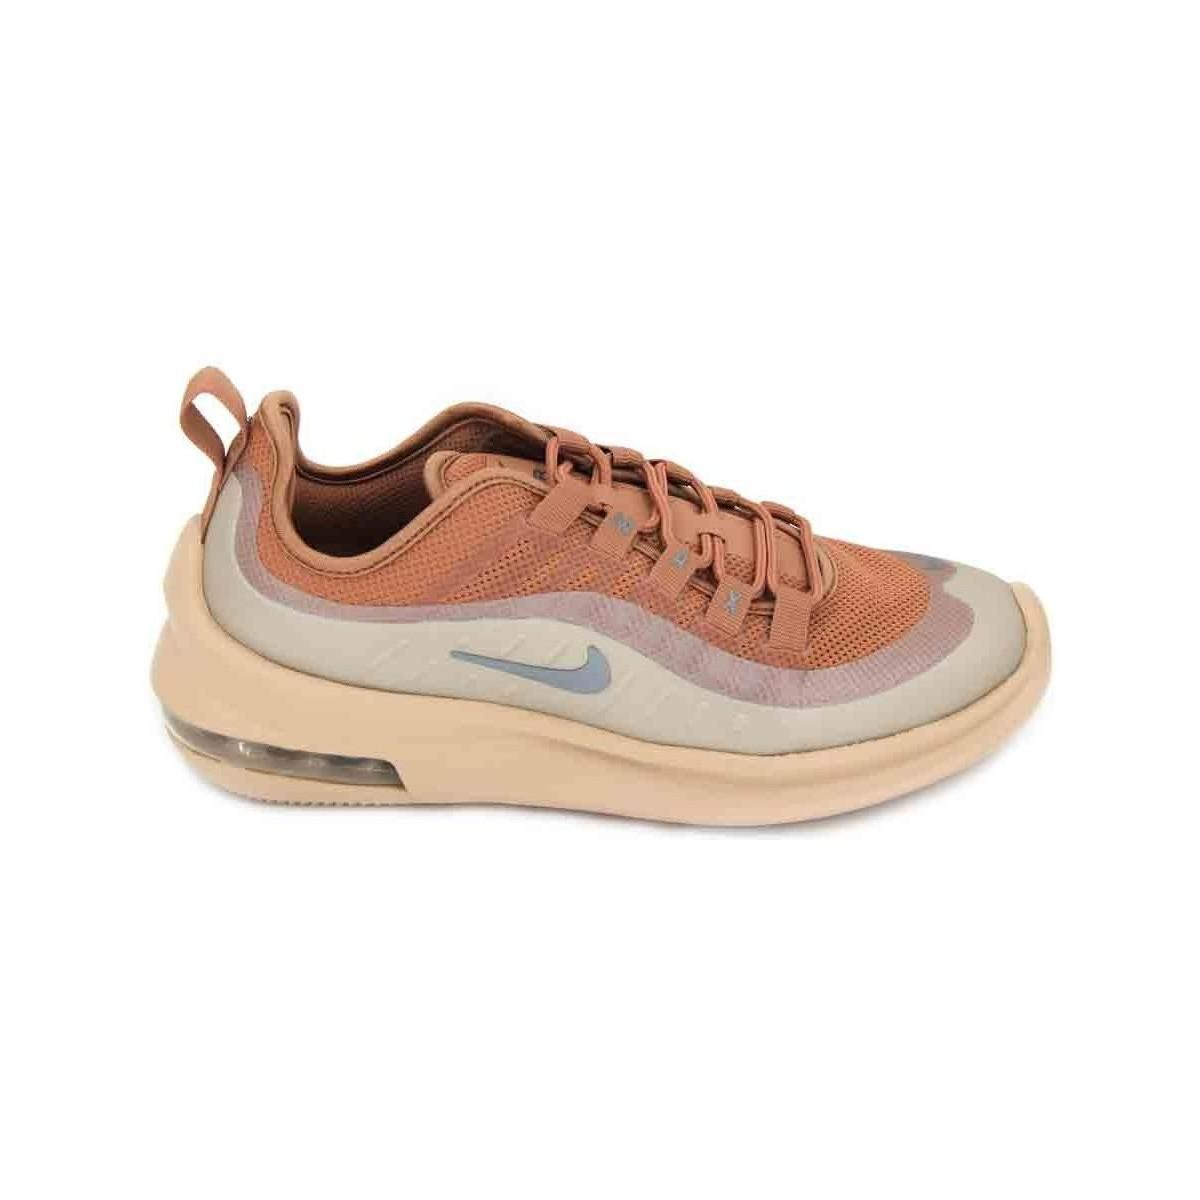 hot sale online 1d656 56907 Nike. Wmns Air Max Axis Aa2168 Women s Trainers Women s Shoes (trainers) In  Pink